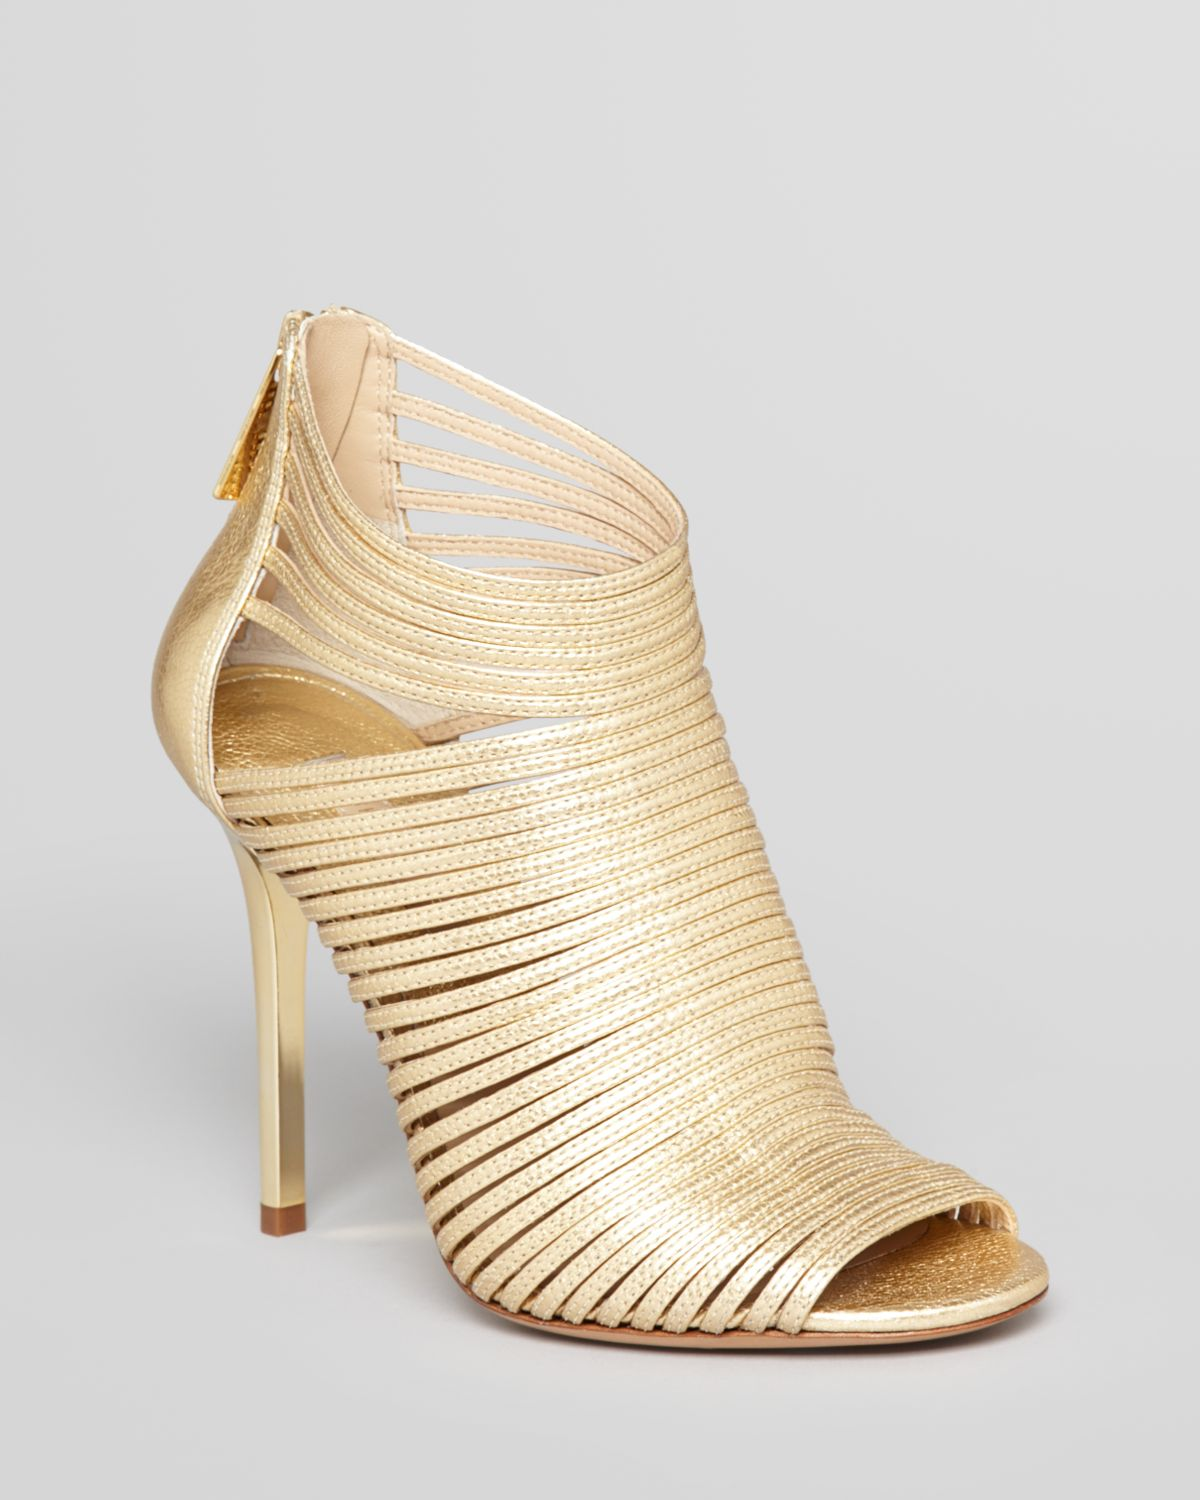 Michael kors Sandals - Maxi Strappy High Heel in Metallic | Lyst